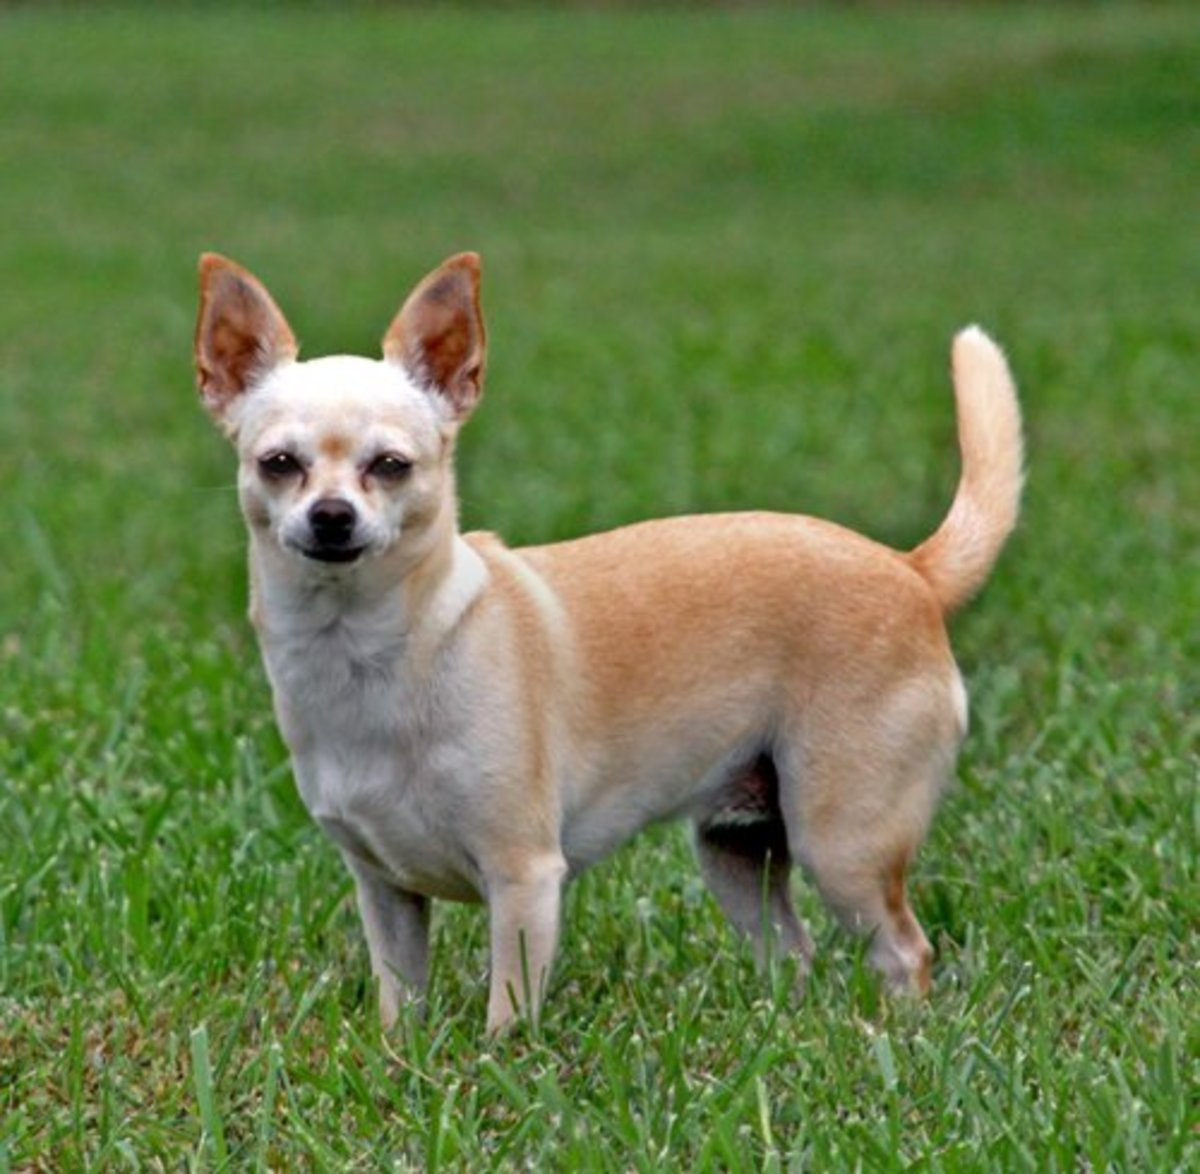 This Chihuahua receives the same amount of vaccine as a Great Dane!